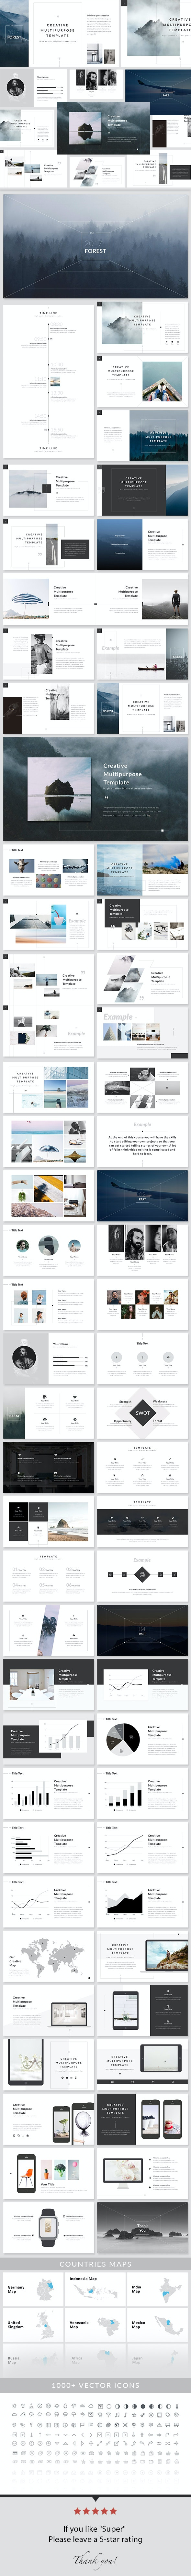 Forest - PowerPoint Presentation Template - Creative PowerPoint Templates